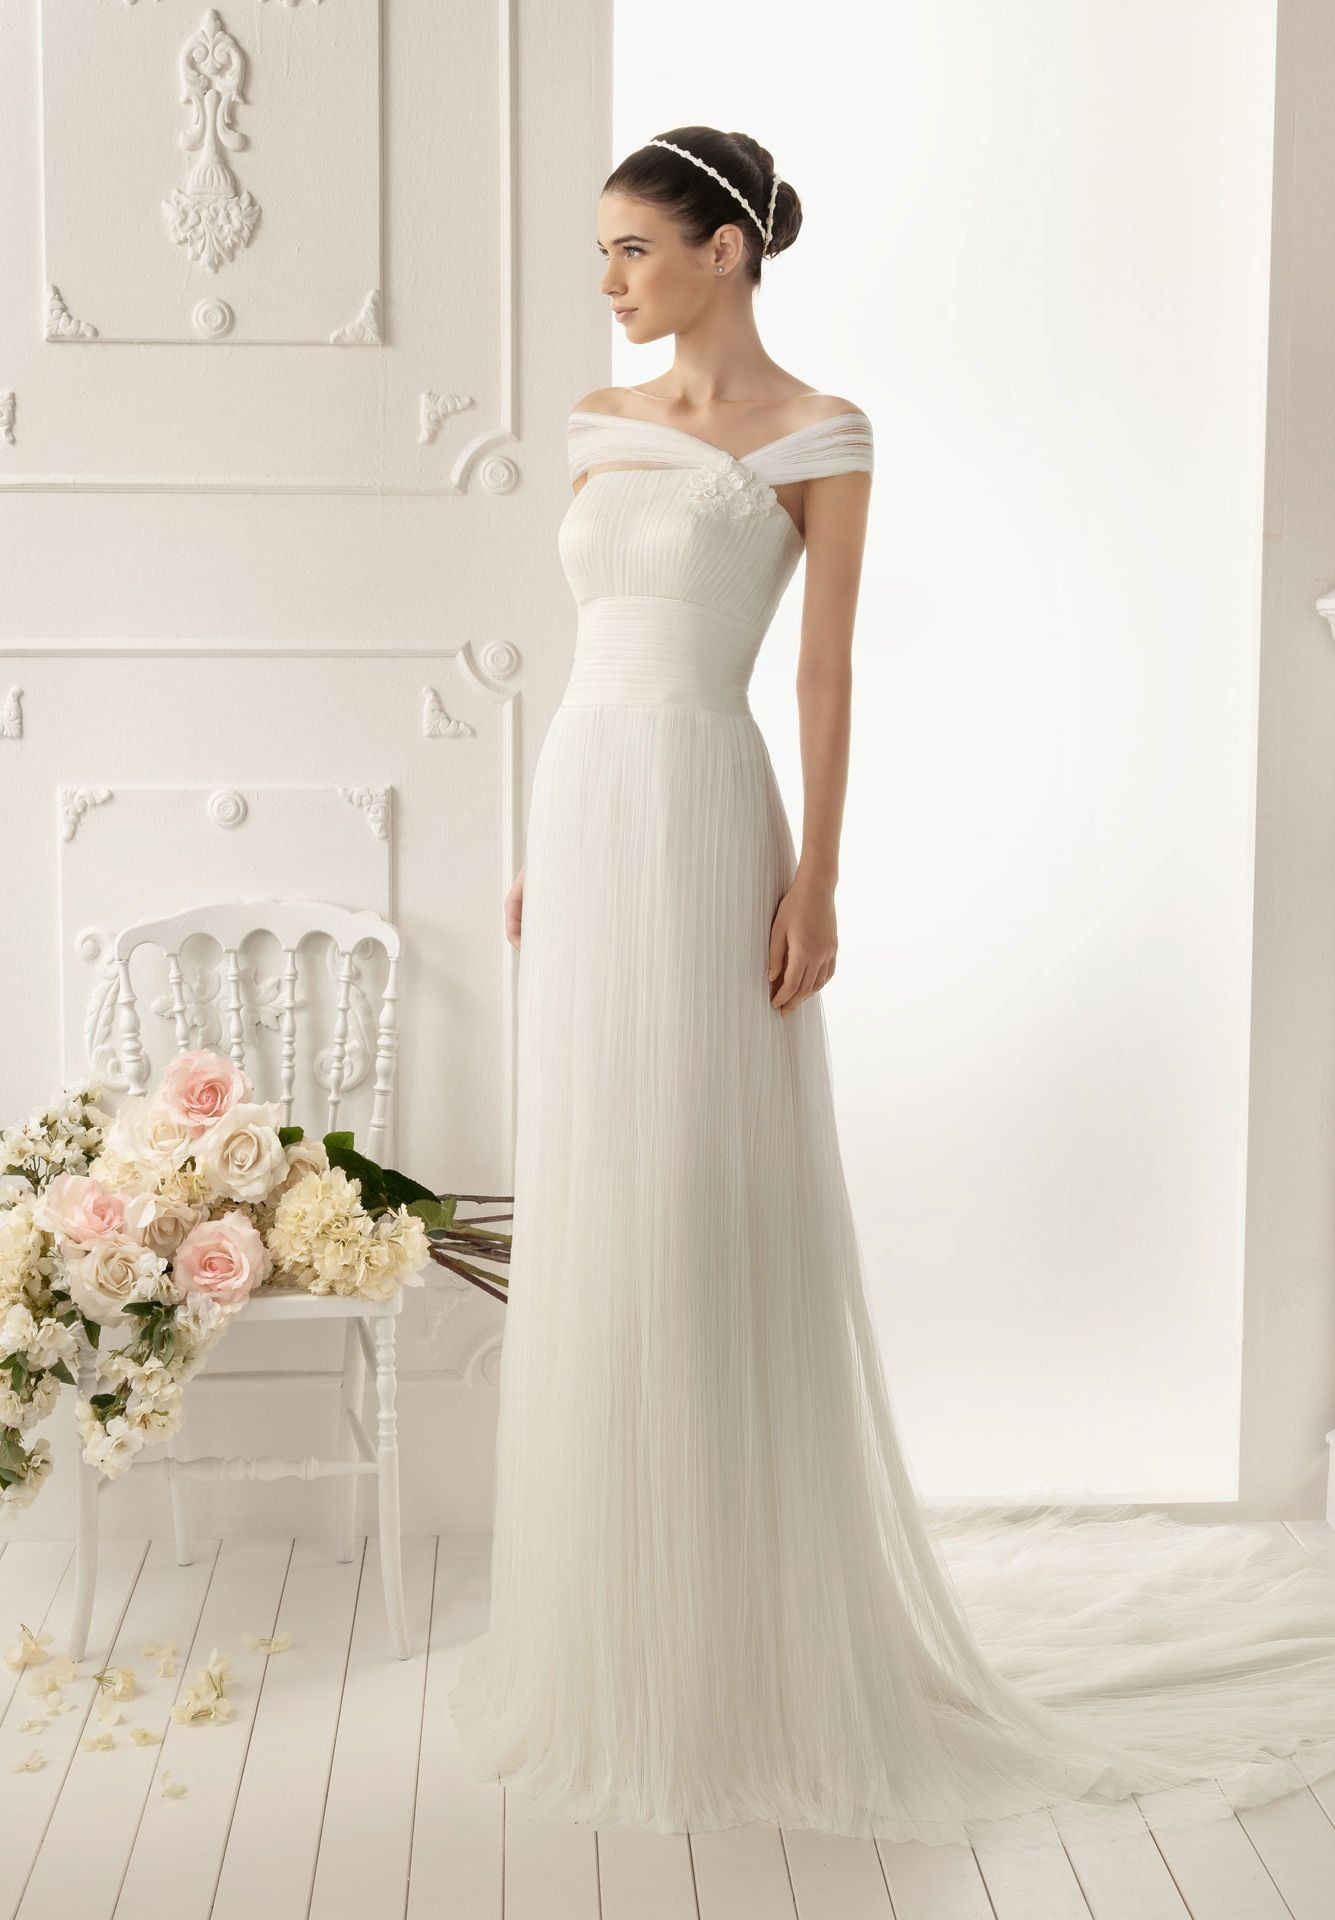 Dress styles for petite figures for beautiful ladies for Wedding dresses for small women